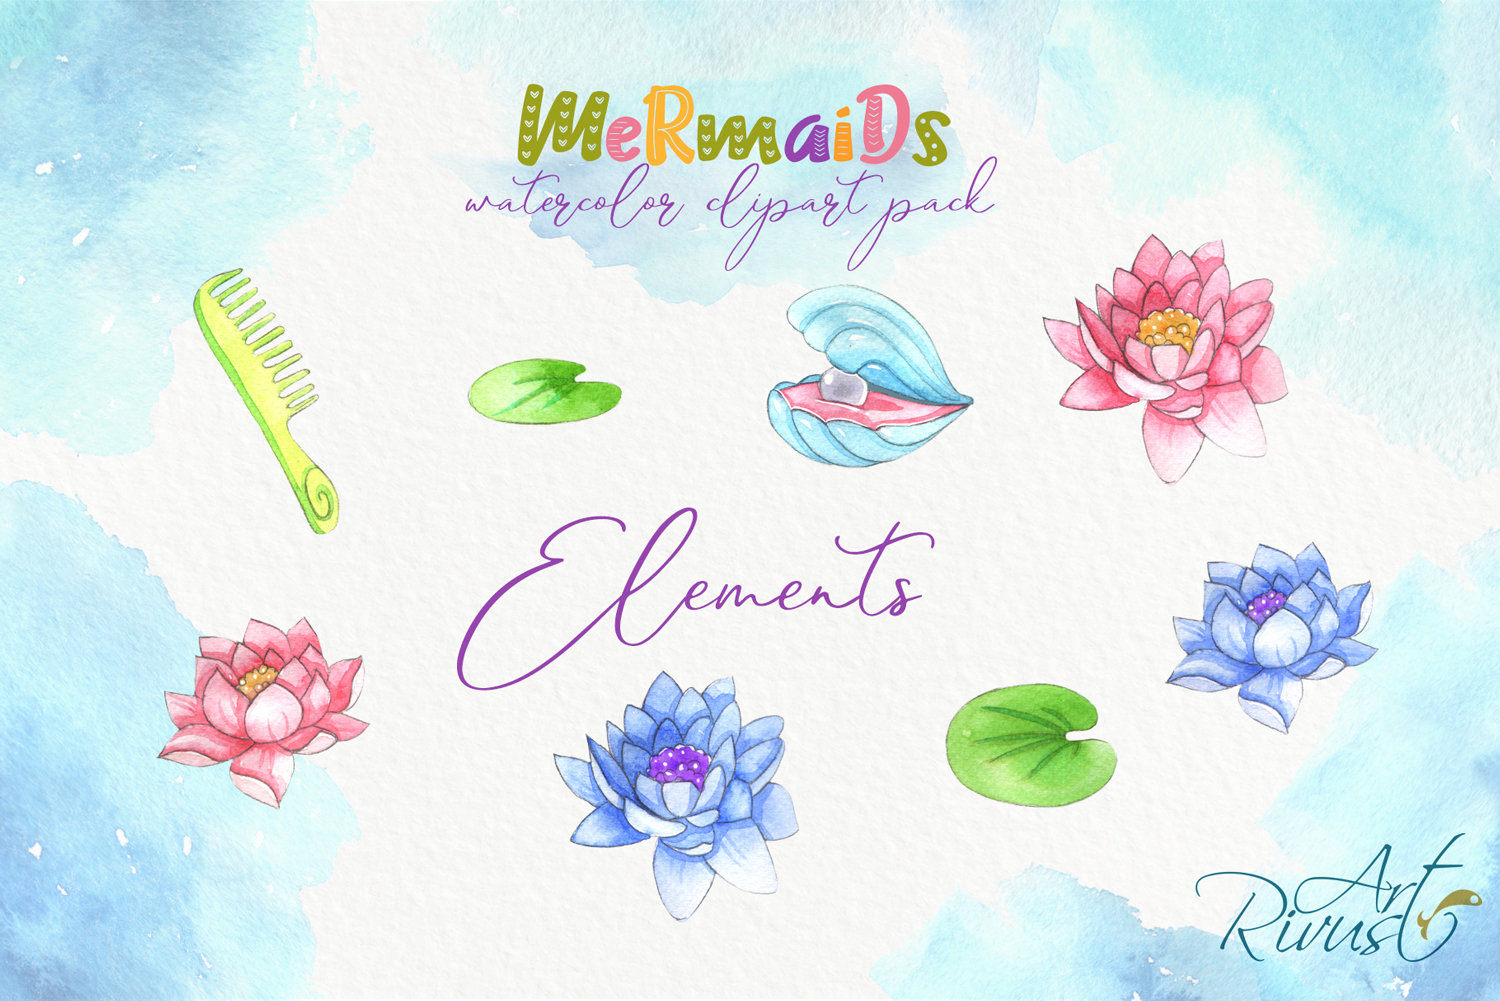 Cute mermaids clipart pack. Watercolor clip art baby shower example image 2